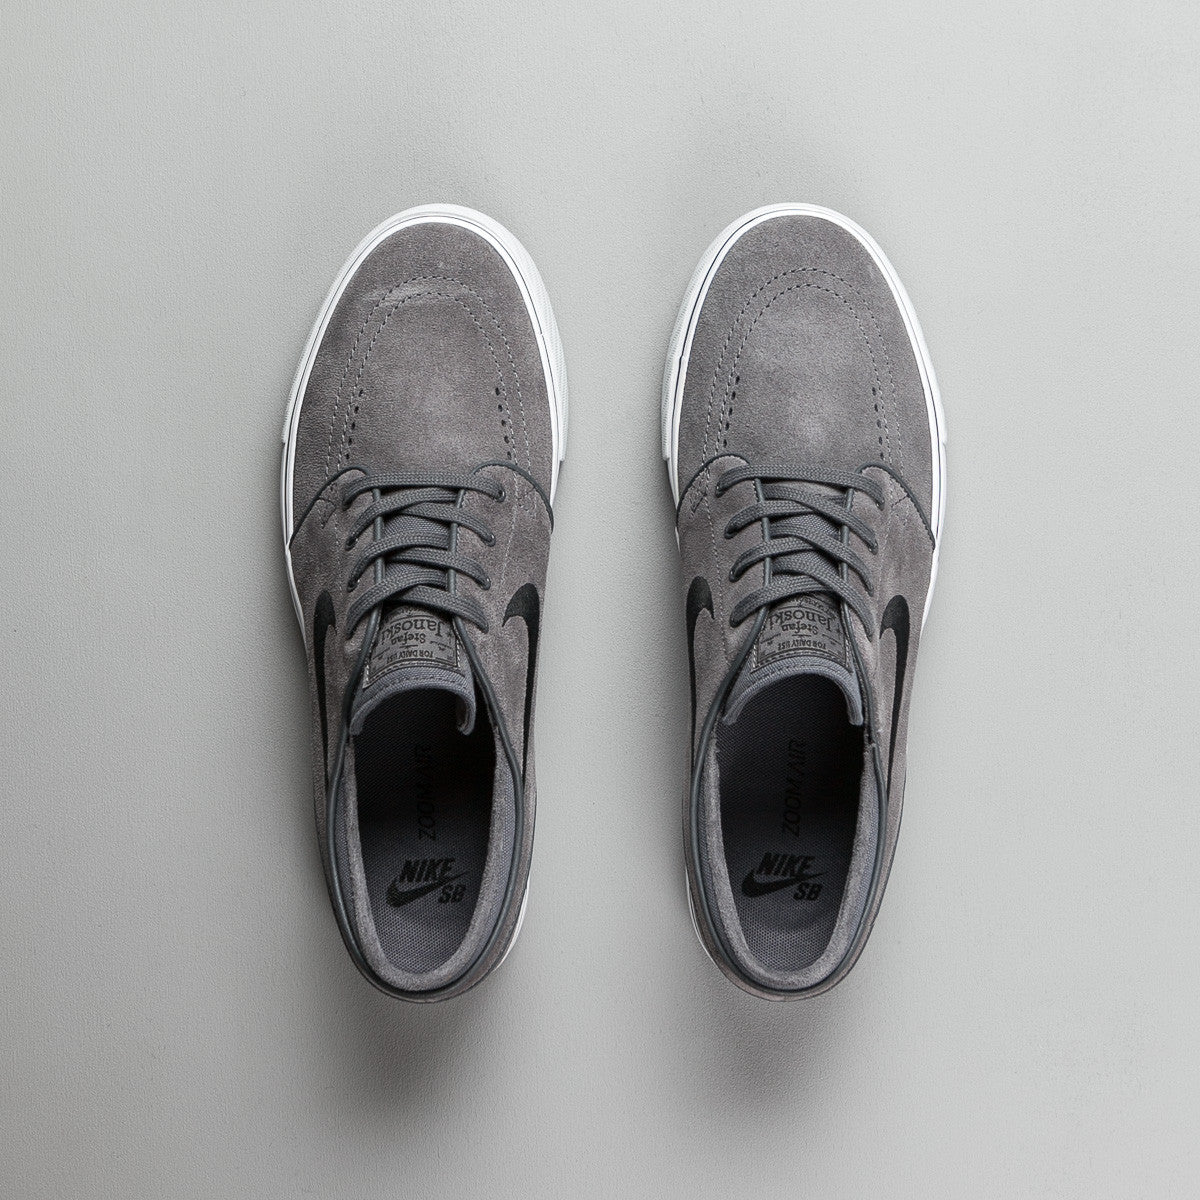 Nike SB Stefan Janoski Shoes - Dark Grey / Black - Pure Platinum - Black